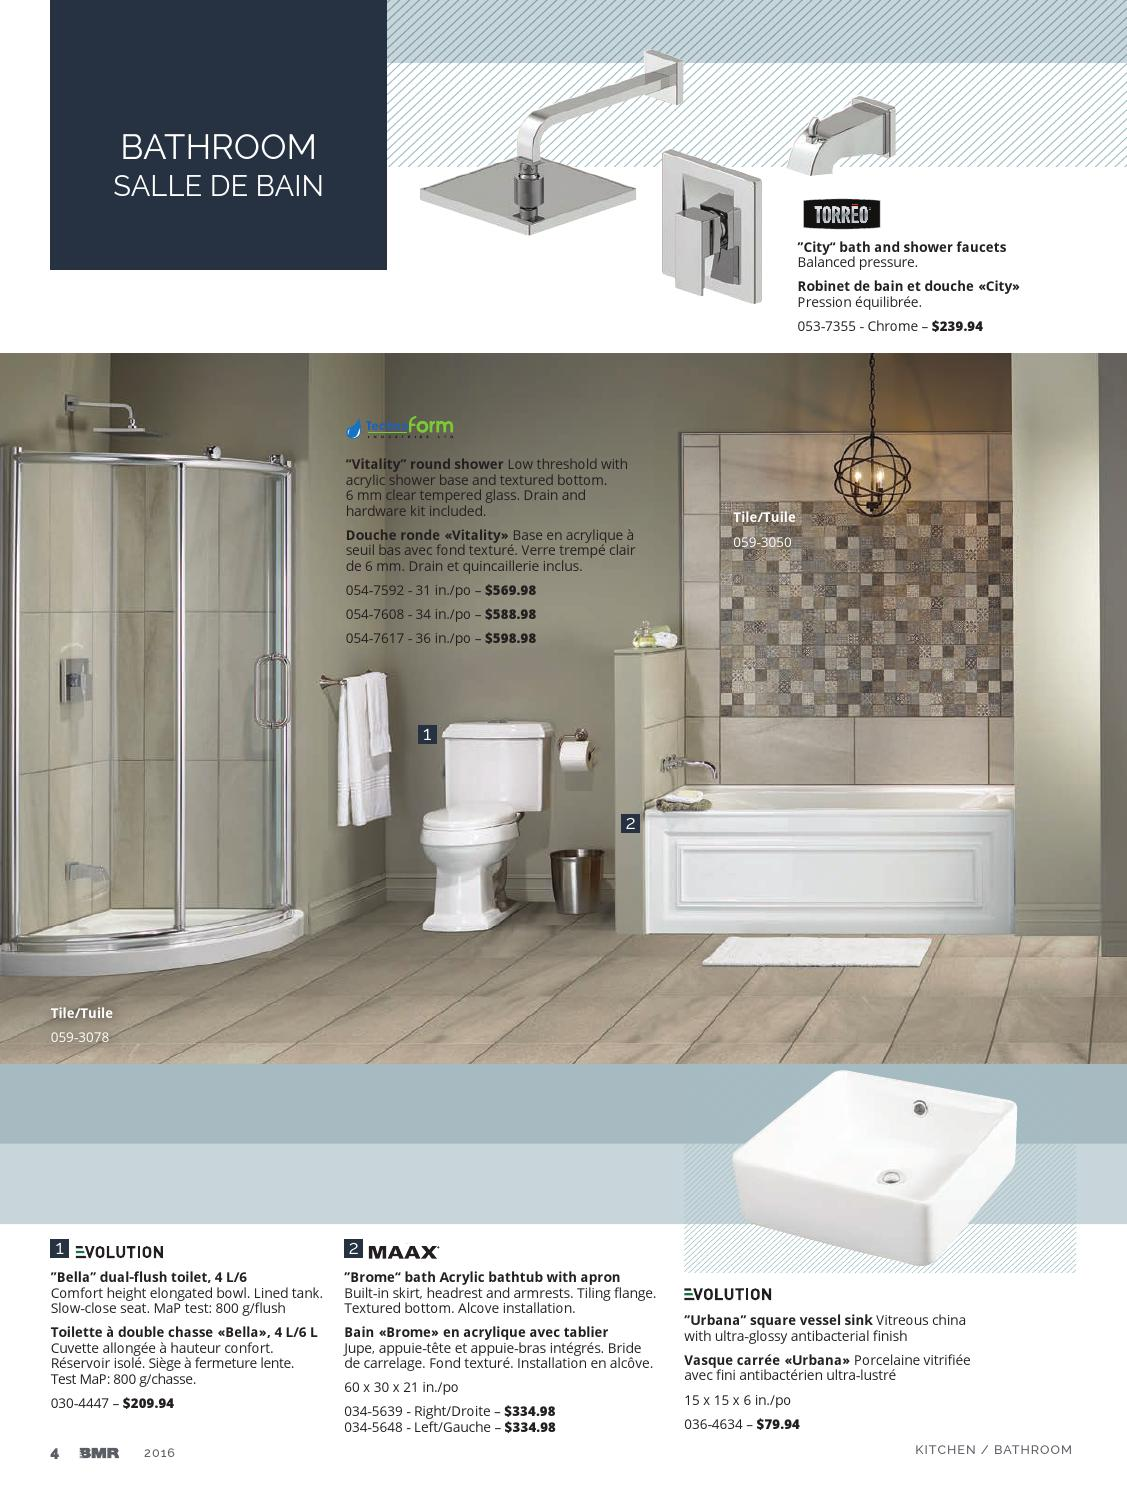 Kitchen And Bathroom 2016 By Groupe Bmr Issuu - Siège De Douche Design